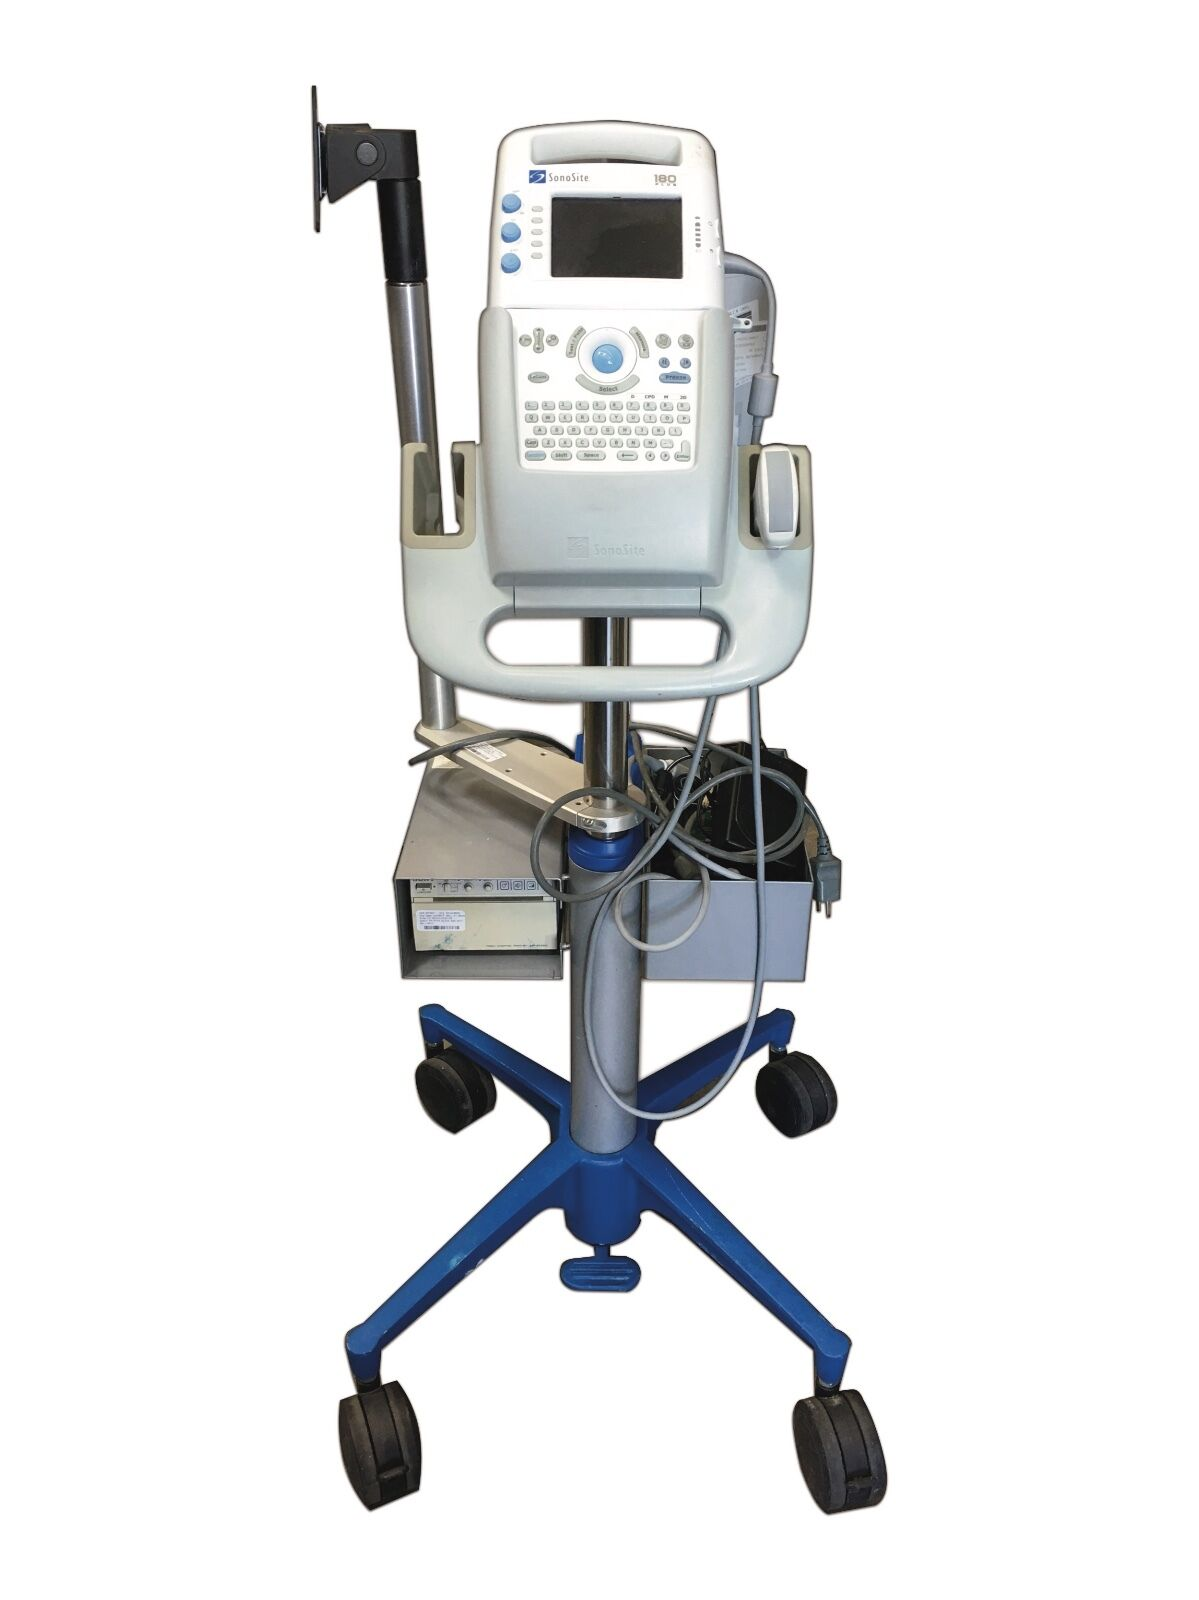 USED SONOSITE 180 PLUS ULTRASOUND SYSTEM